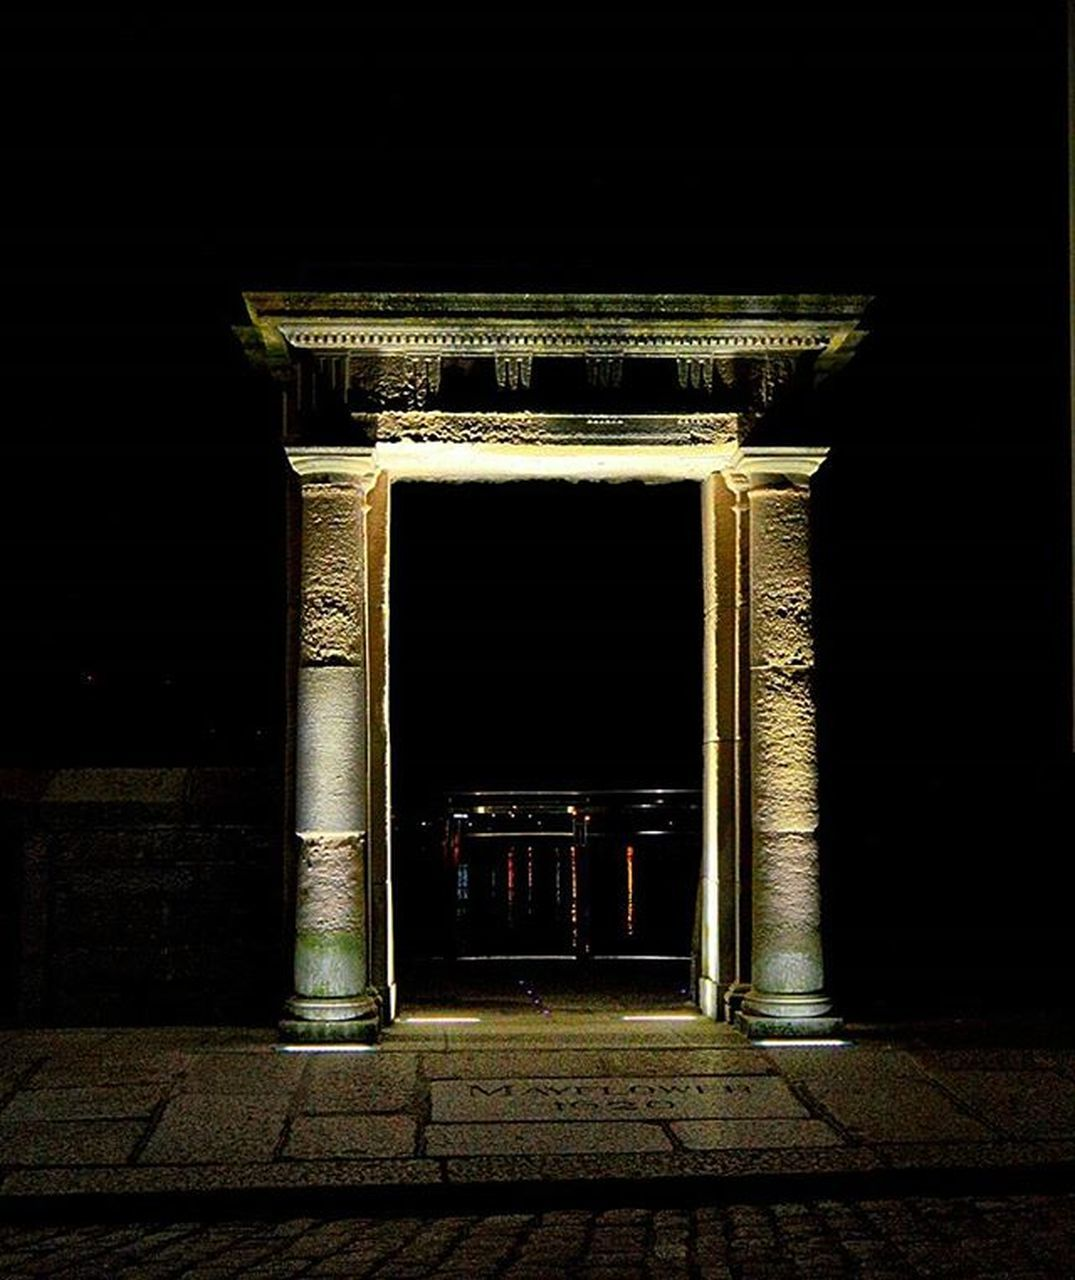 architecture, no people, indoors, history, night, built structure, architectural column